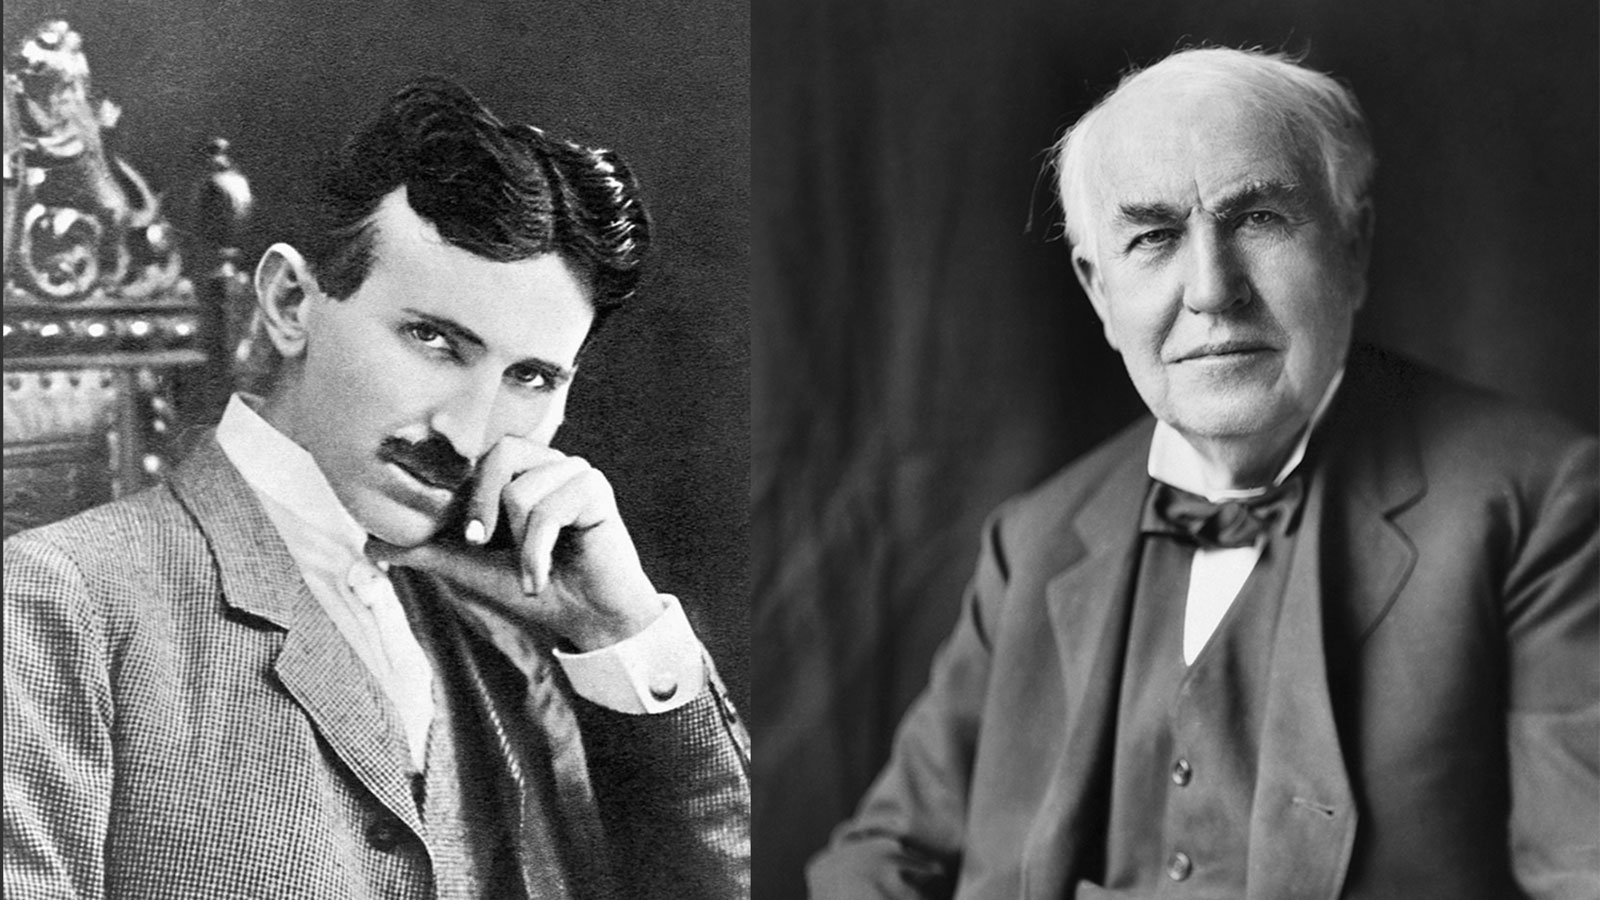 Thomas Edison vs. Nikola Tesla Quiz